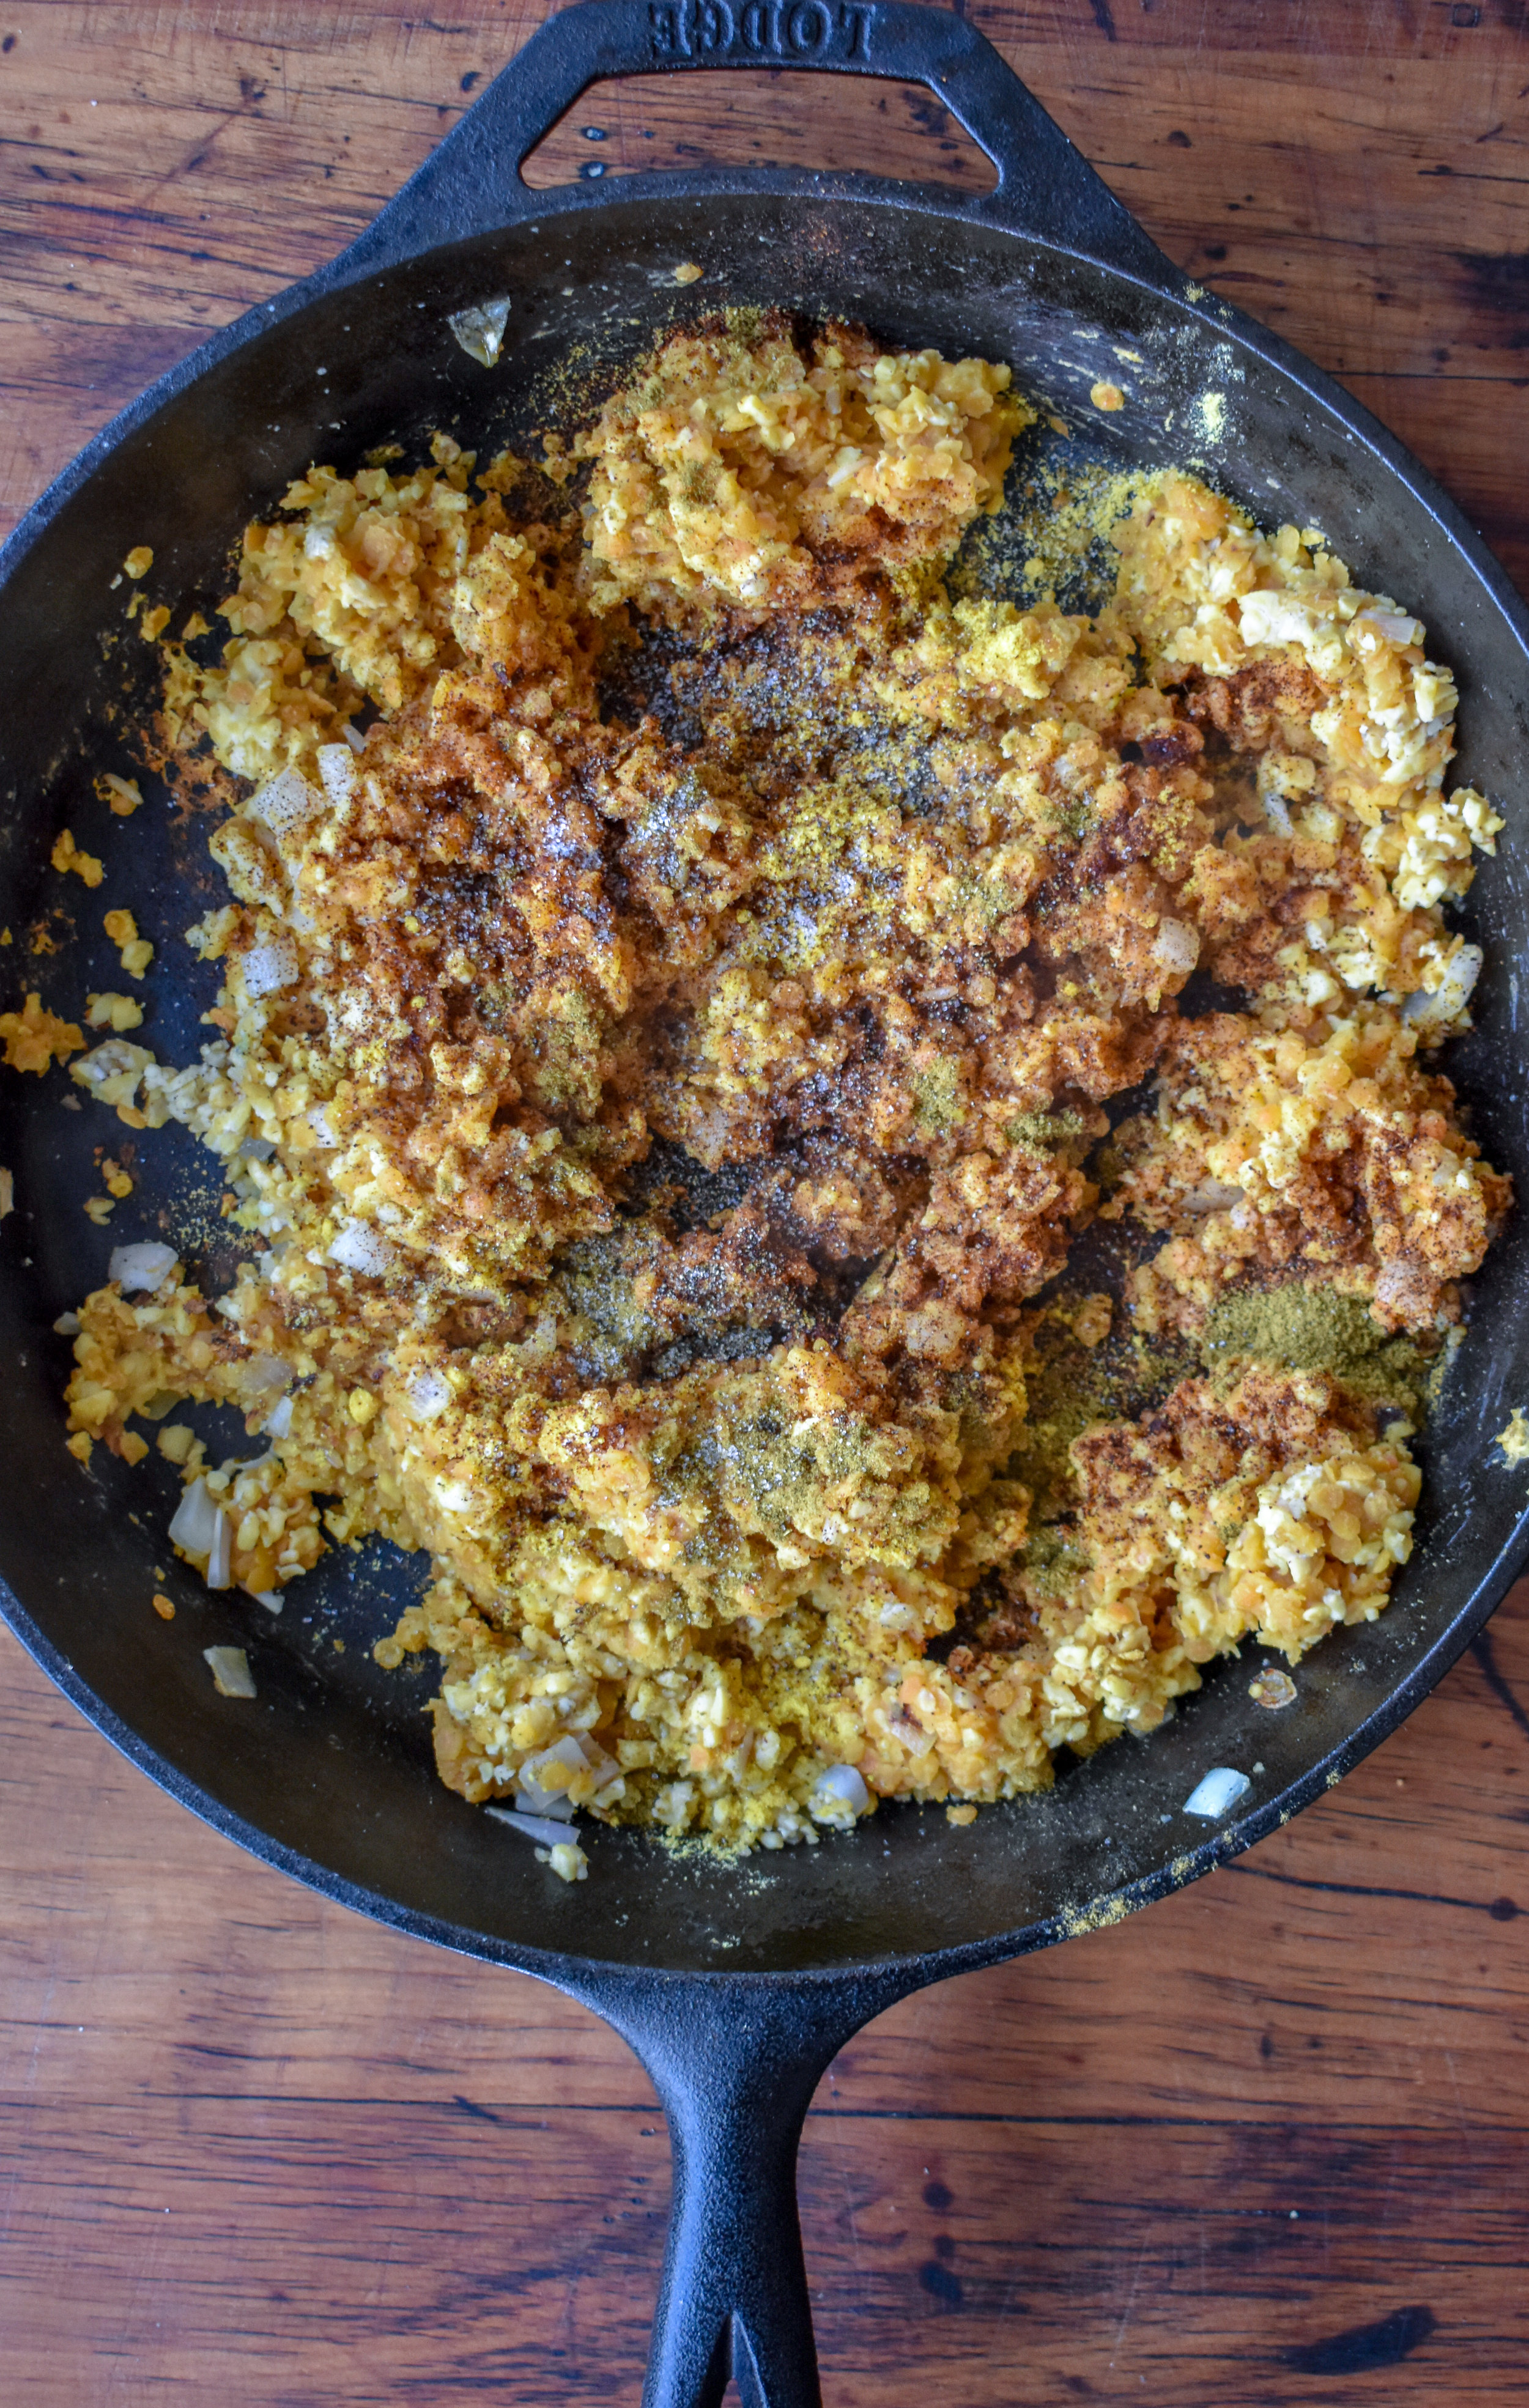 3. If onions + garlic finish before lentils, take them off heat. Once lentils are done, add lentils, blended tempeh and all the spices for sloppy joes to the pan. Mix well and cook for 2-3 minutes over medium heat, stirring frequently.